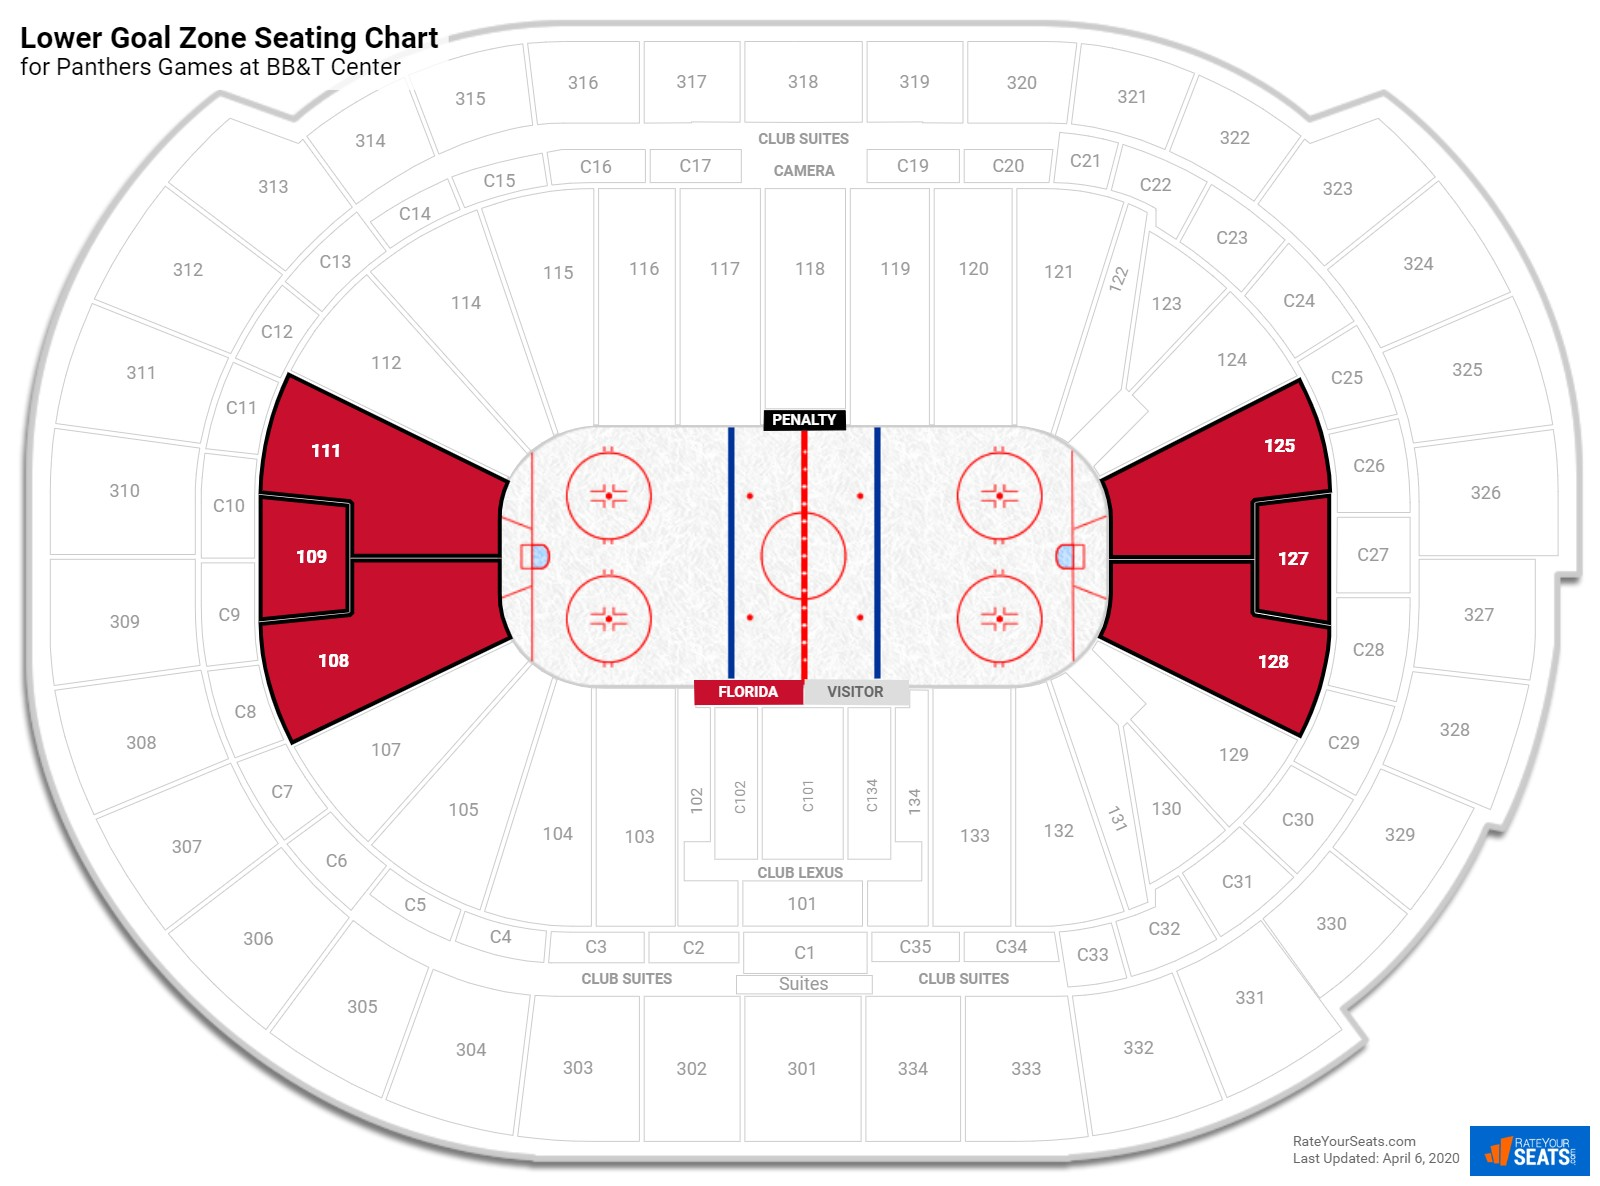 BB&T Center Lower Level Behind the Net seating chart